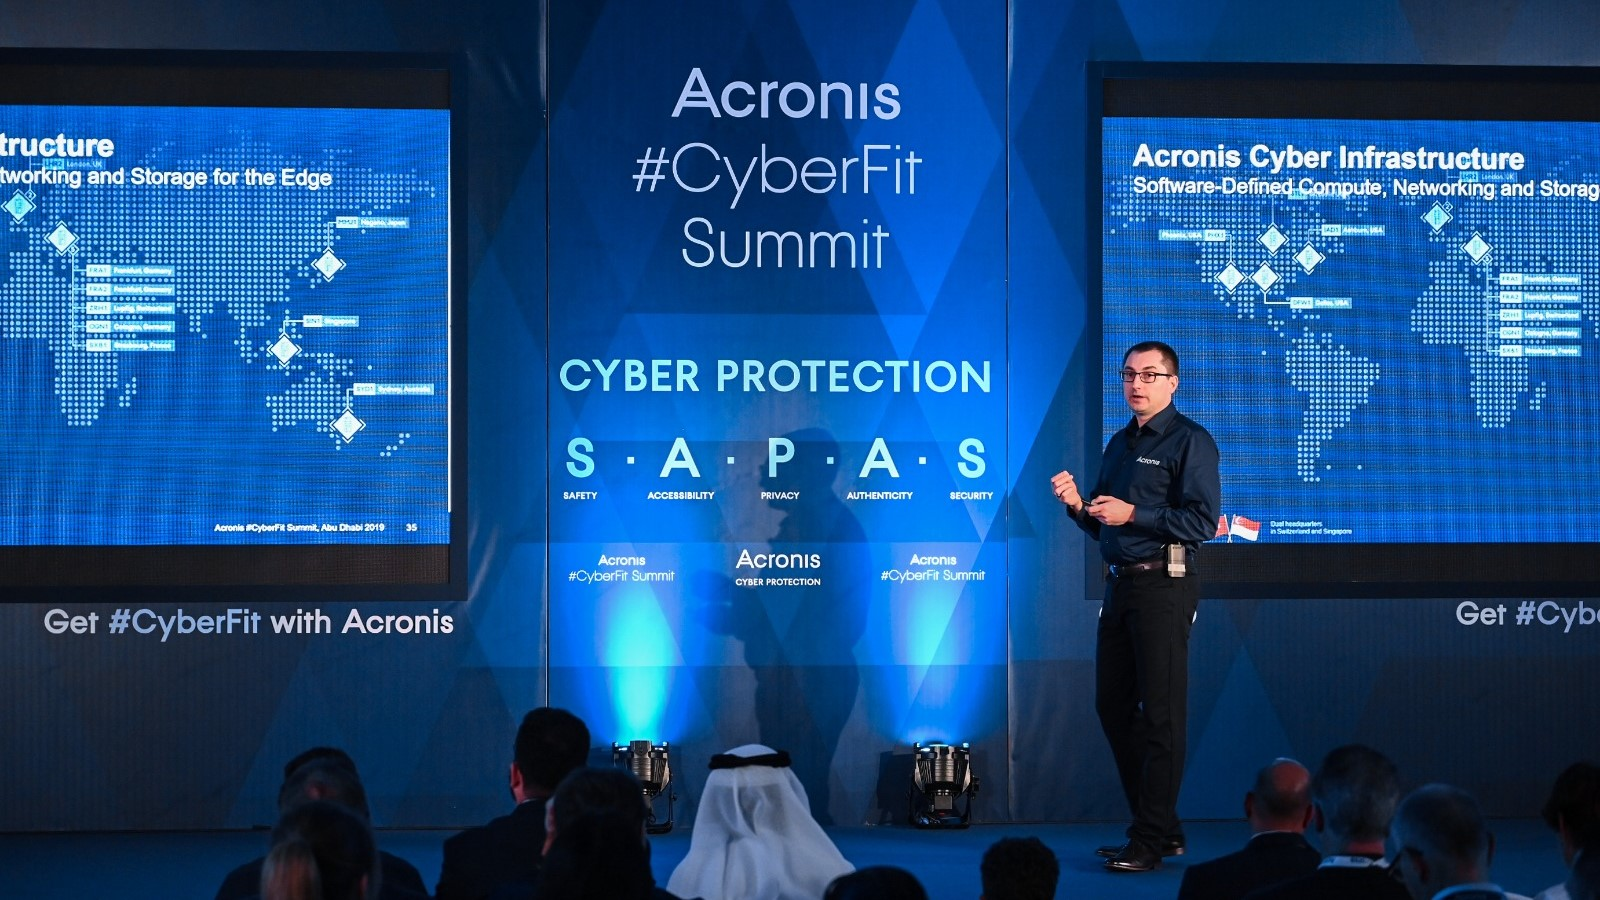 Introducing ... Acronis Cyber Infrastructure!